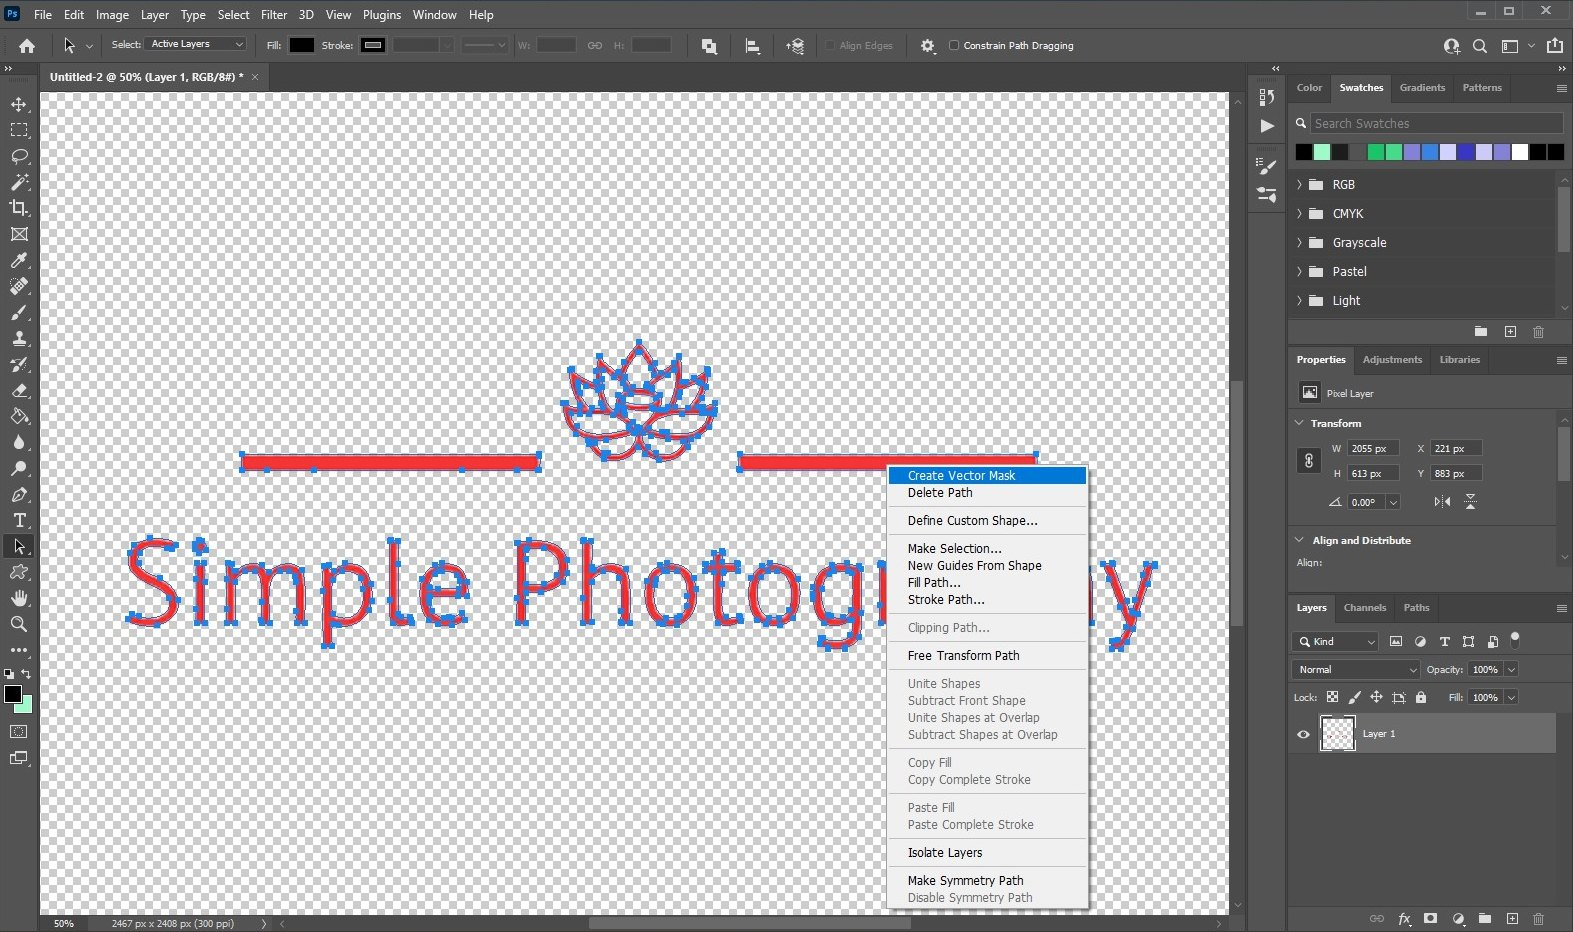 vectorize image in photoshop - 4